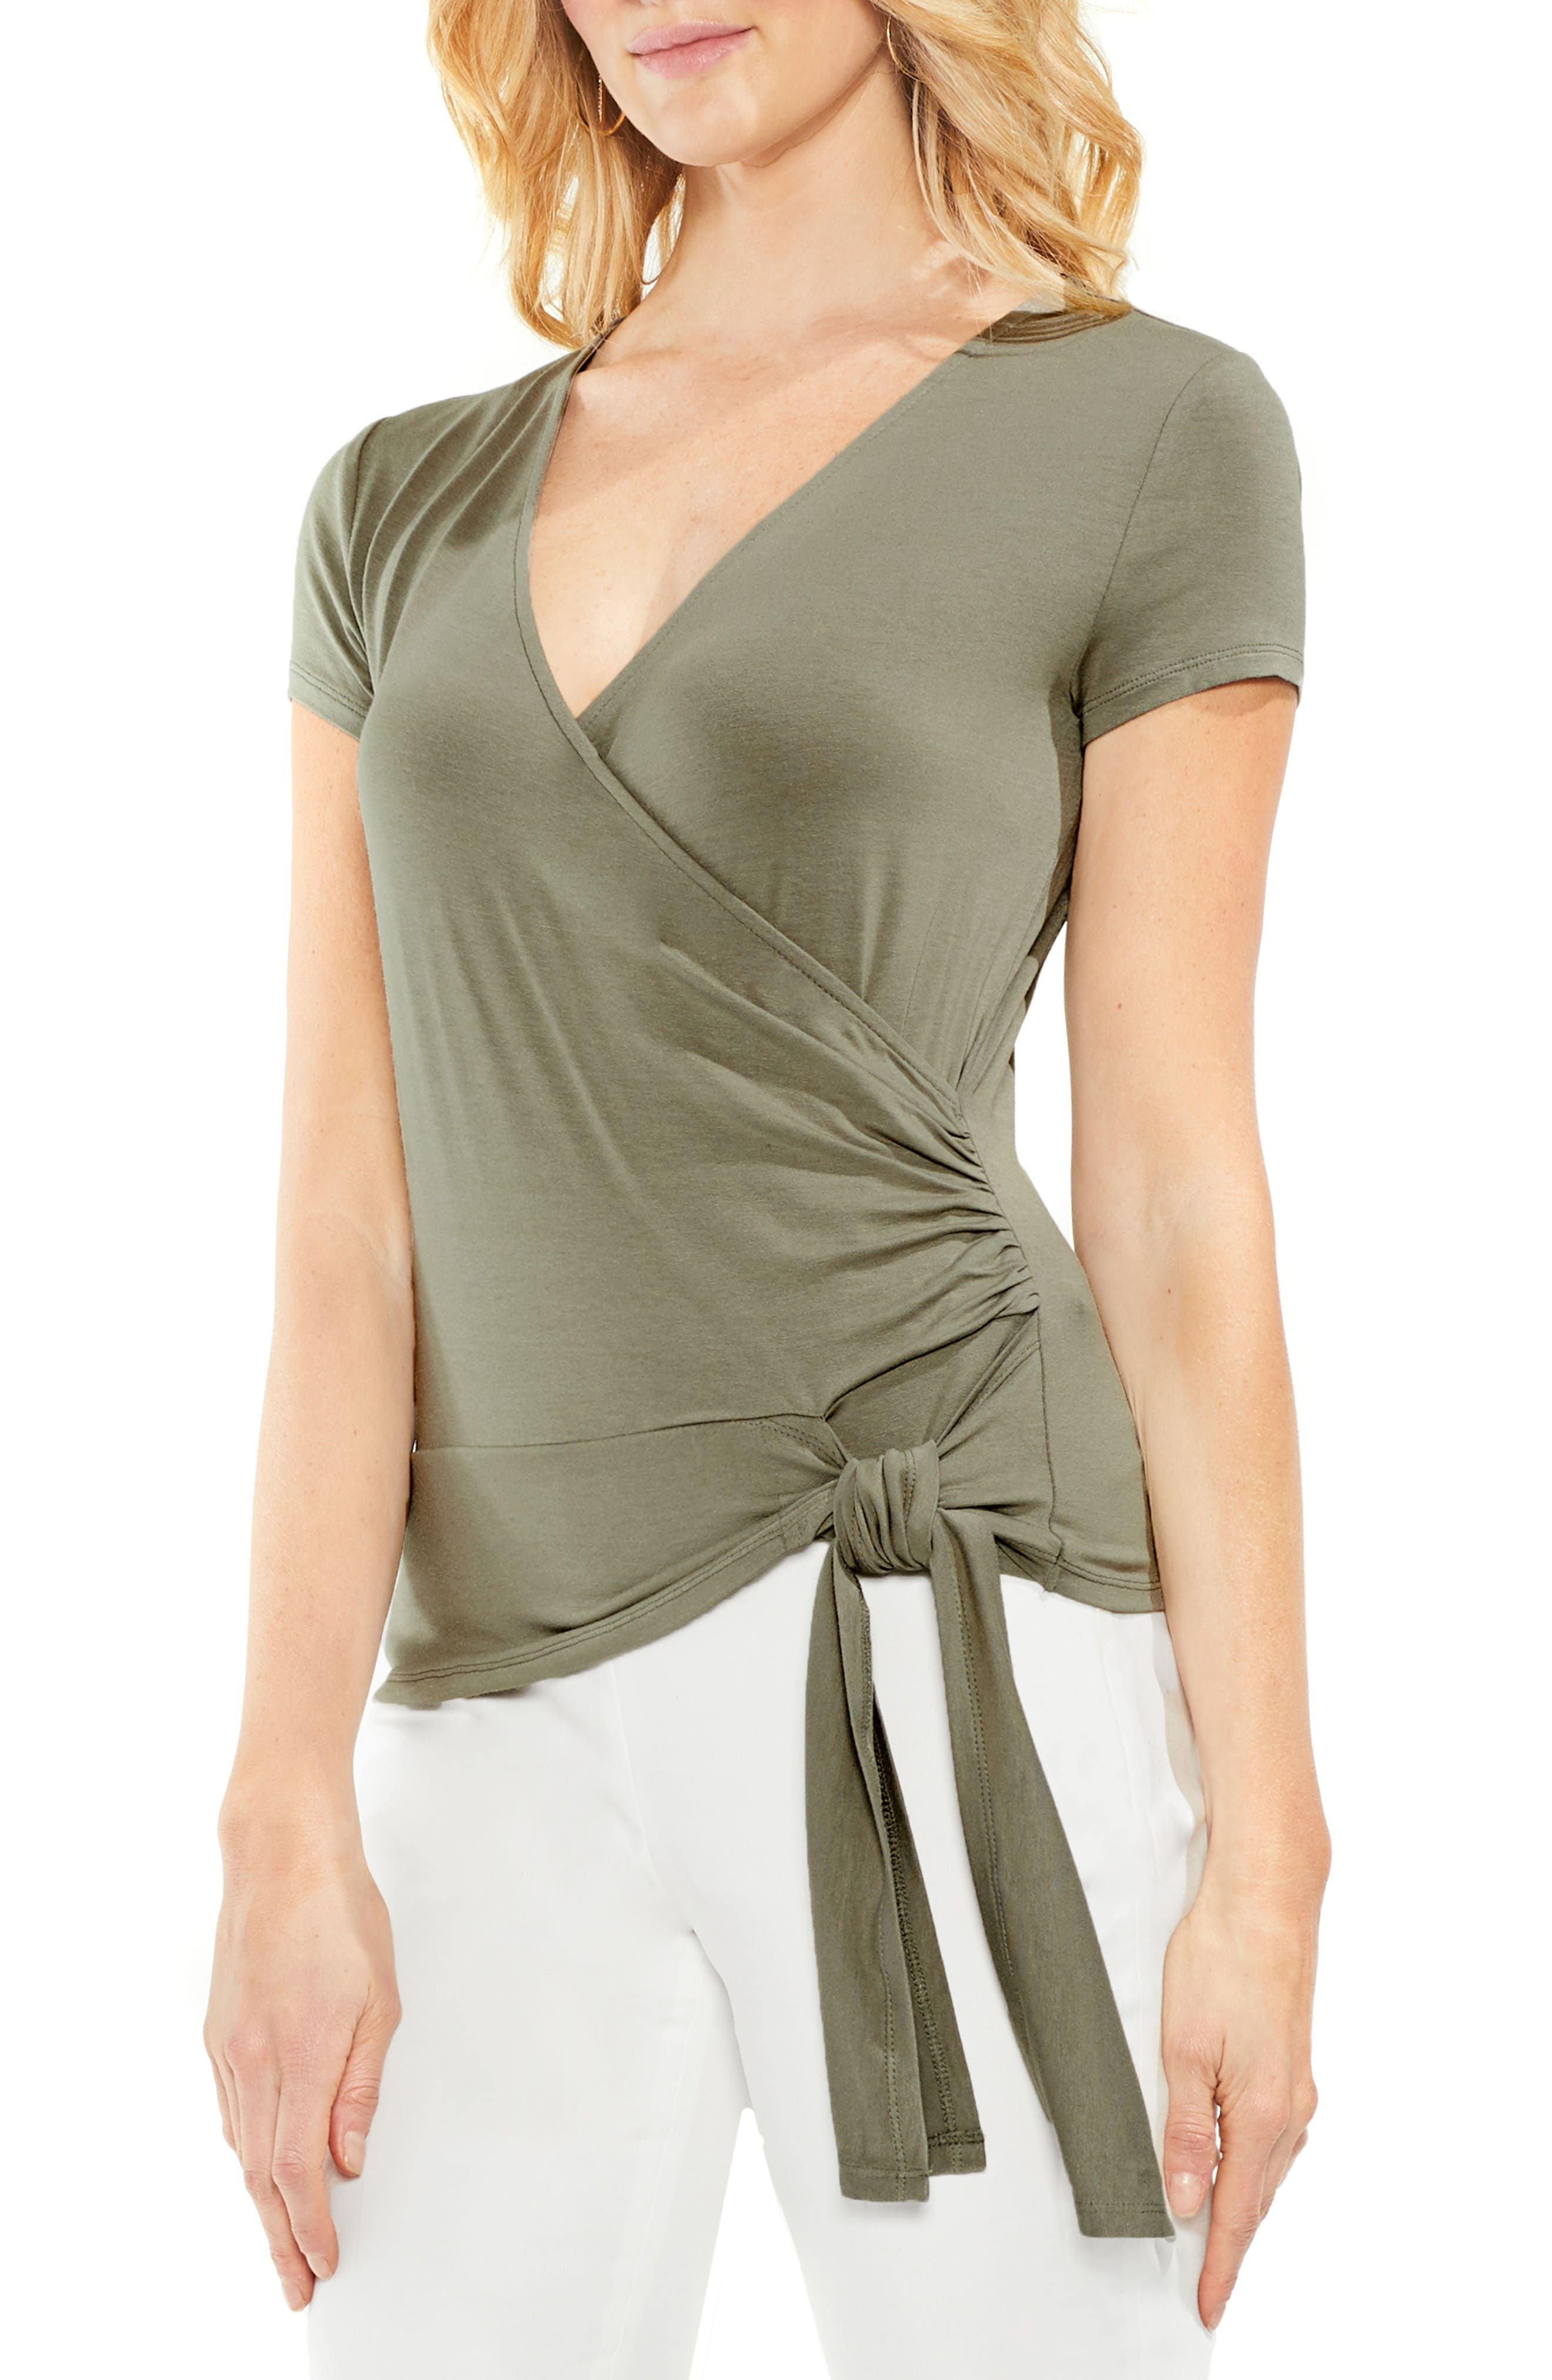 Main Image - Vince Camuto Side Tie Faux Wrap Top